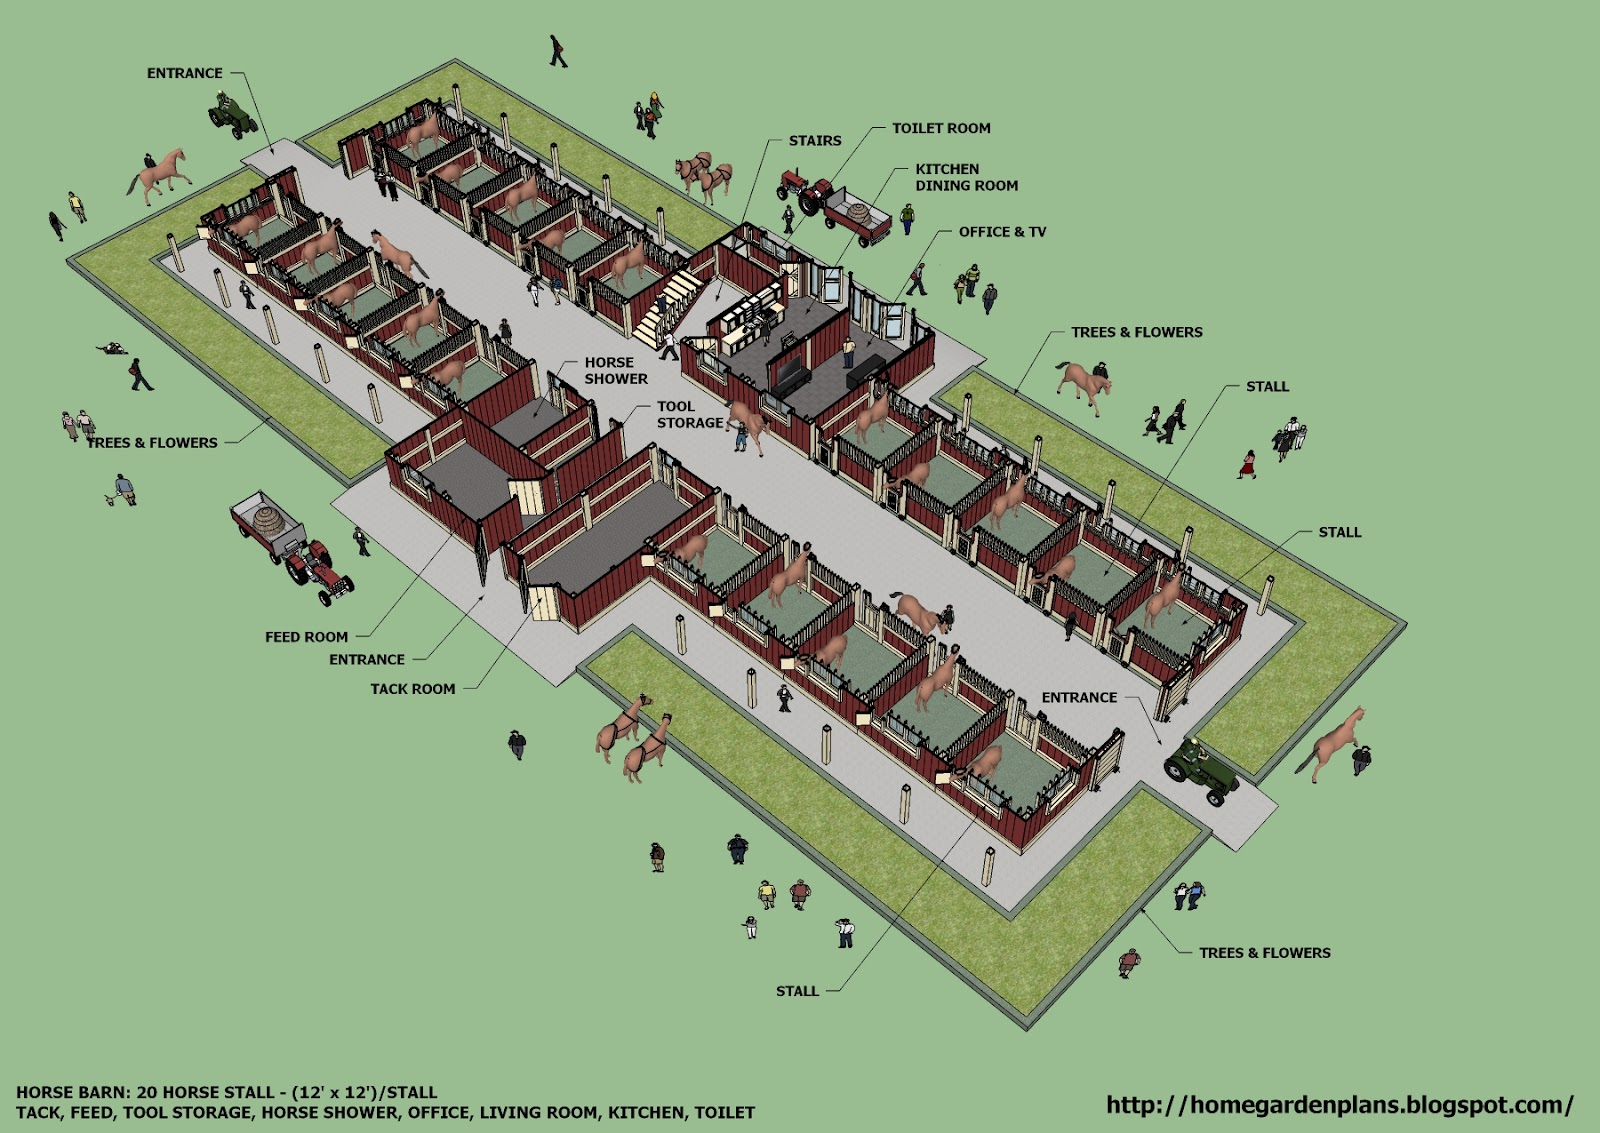 home garden plans b20h large horse barn for 20 horse